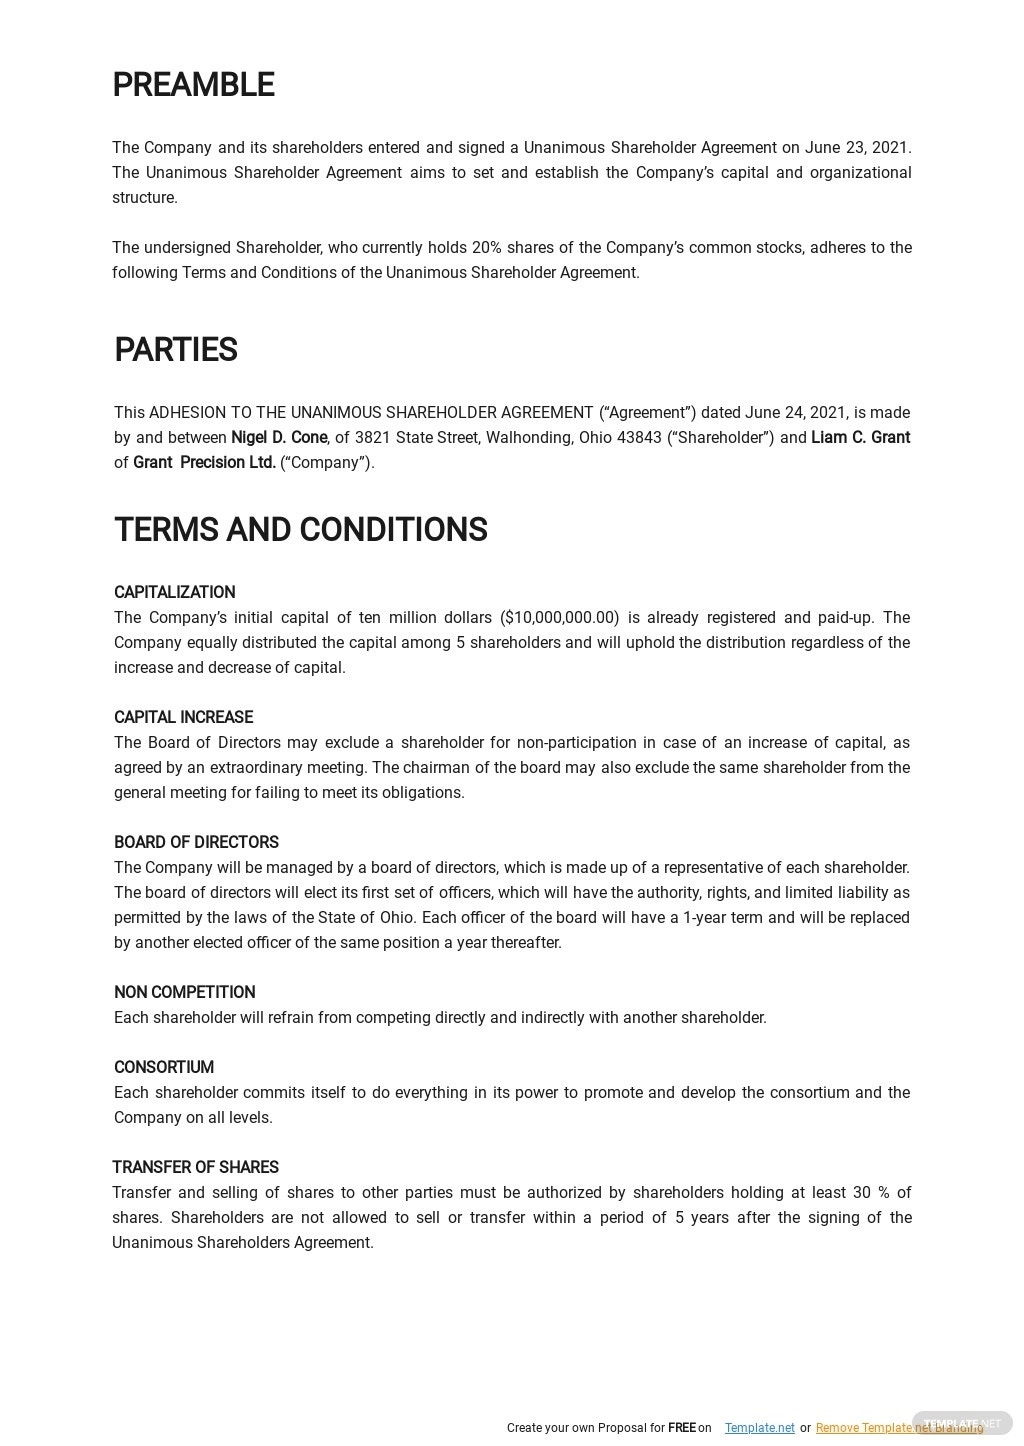 Adhesion to the Unanimous Shareholder Agreement Template 1.jpe